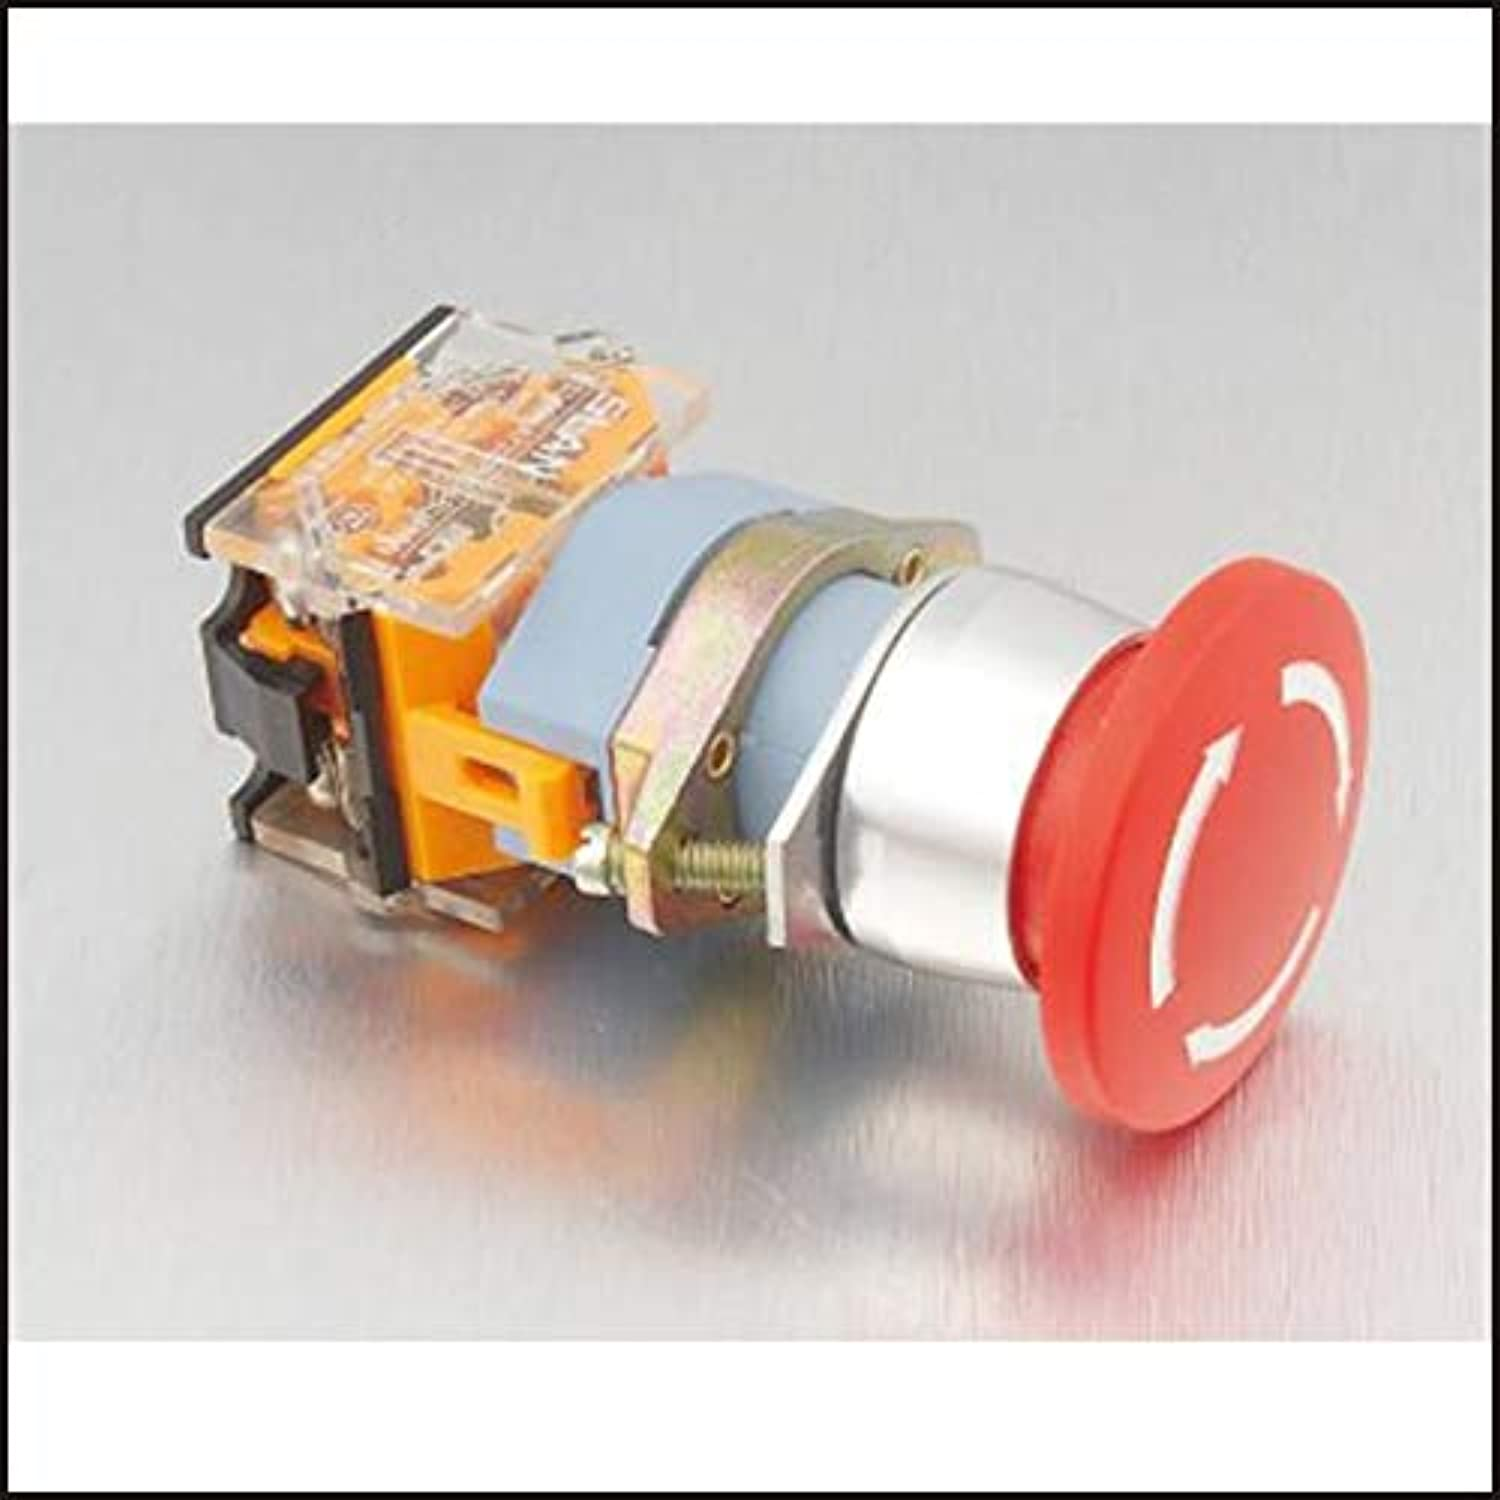 Switch Push Button Switch AC24V Flat Button redary knob Key Button Rocker Switch Mushroom Stop Self Locking knob LA3911Z